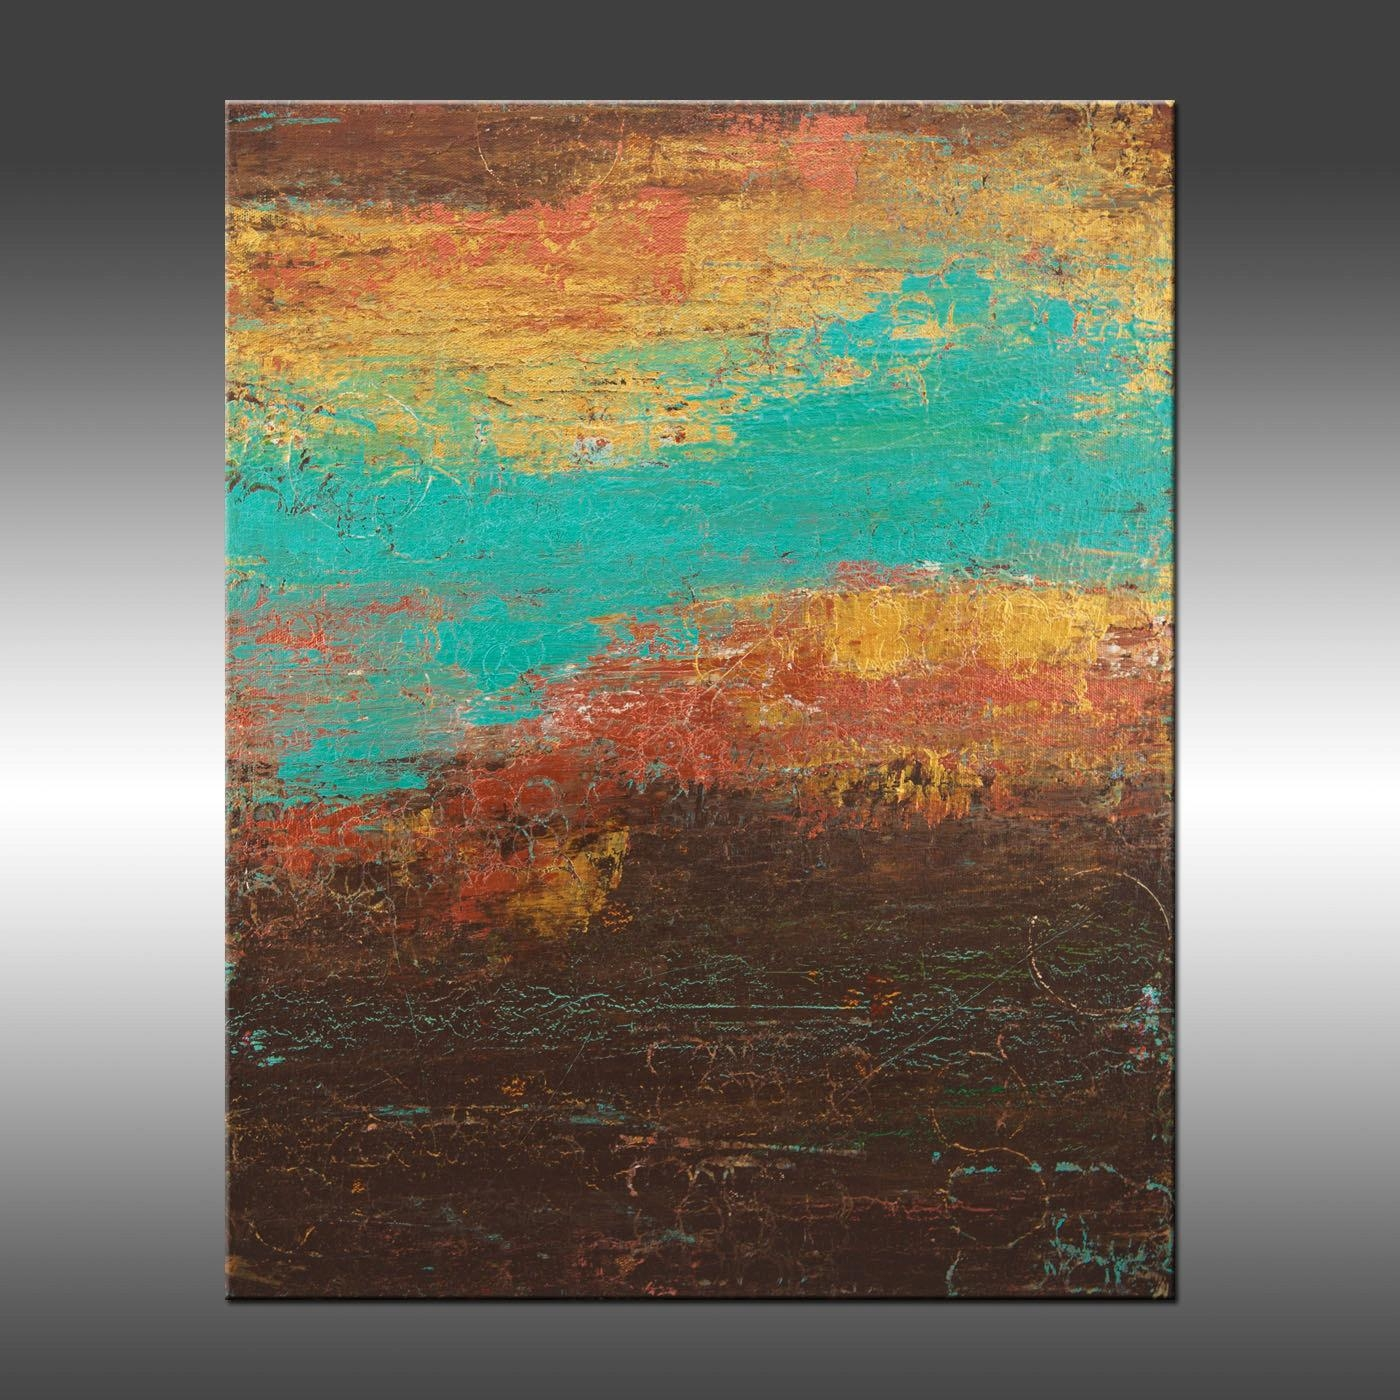 Modern Industrial 4 Art Painting Original Abstract With Turquoise And Brown Wall Art (Image 11 of 20)